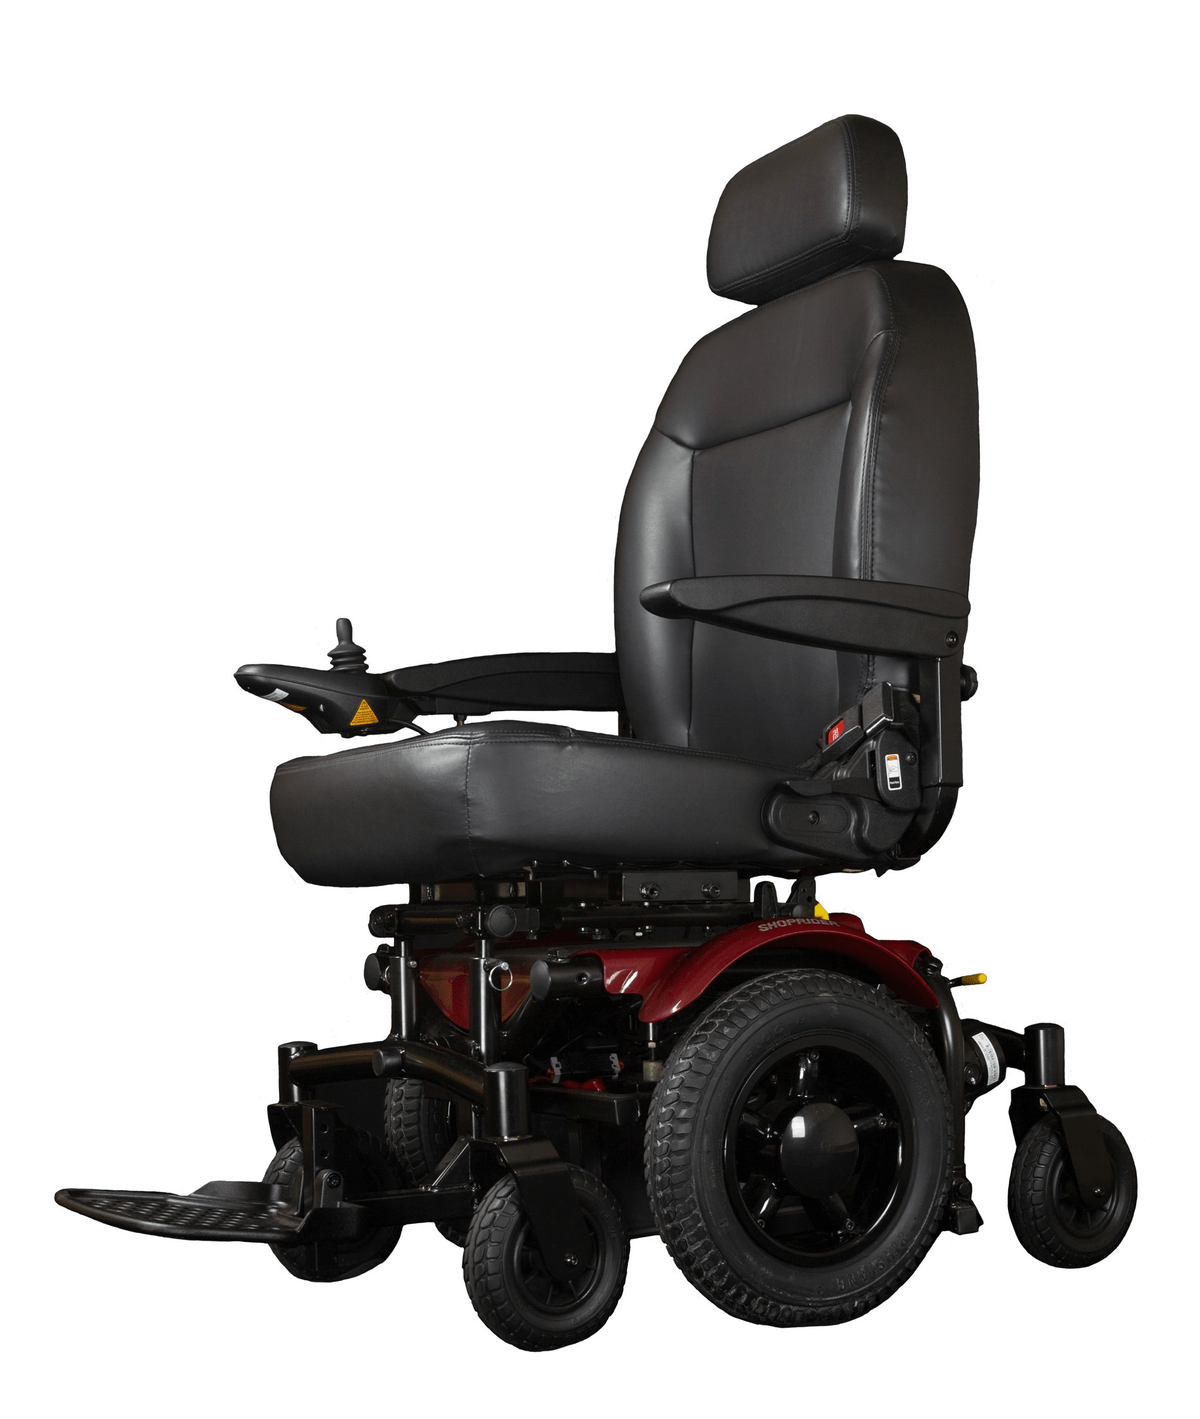 Electric Chair Mobility Shoprider 6runner 14 Power Wheelchair Cheapest Prices